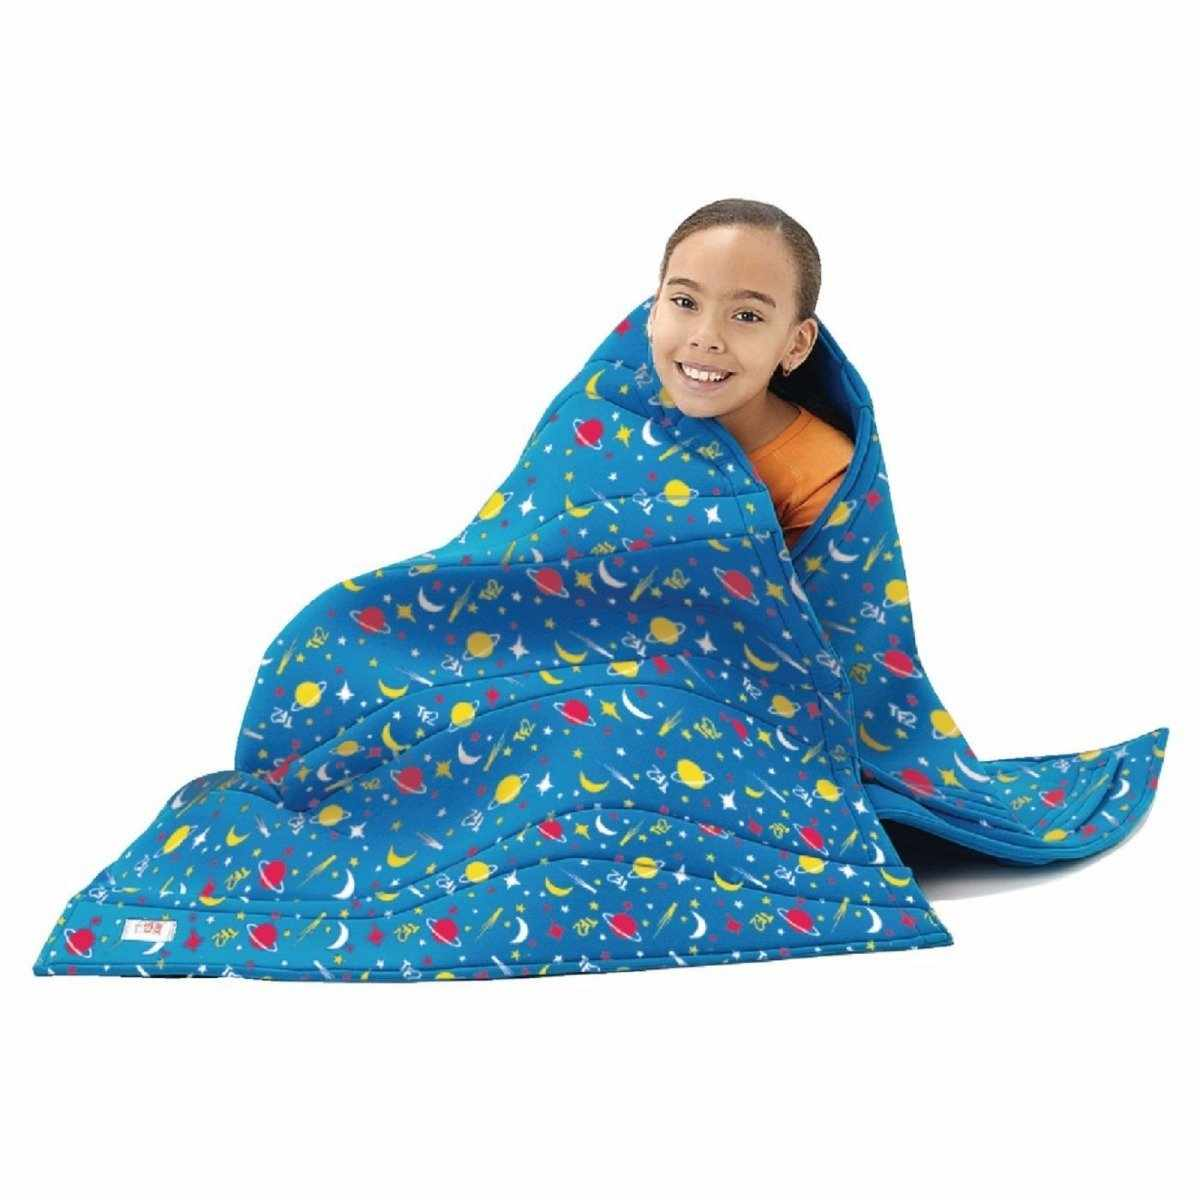 Tumble Forms Weighted Blanket